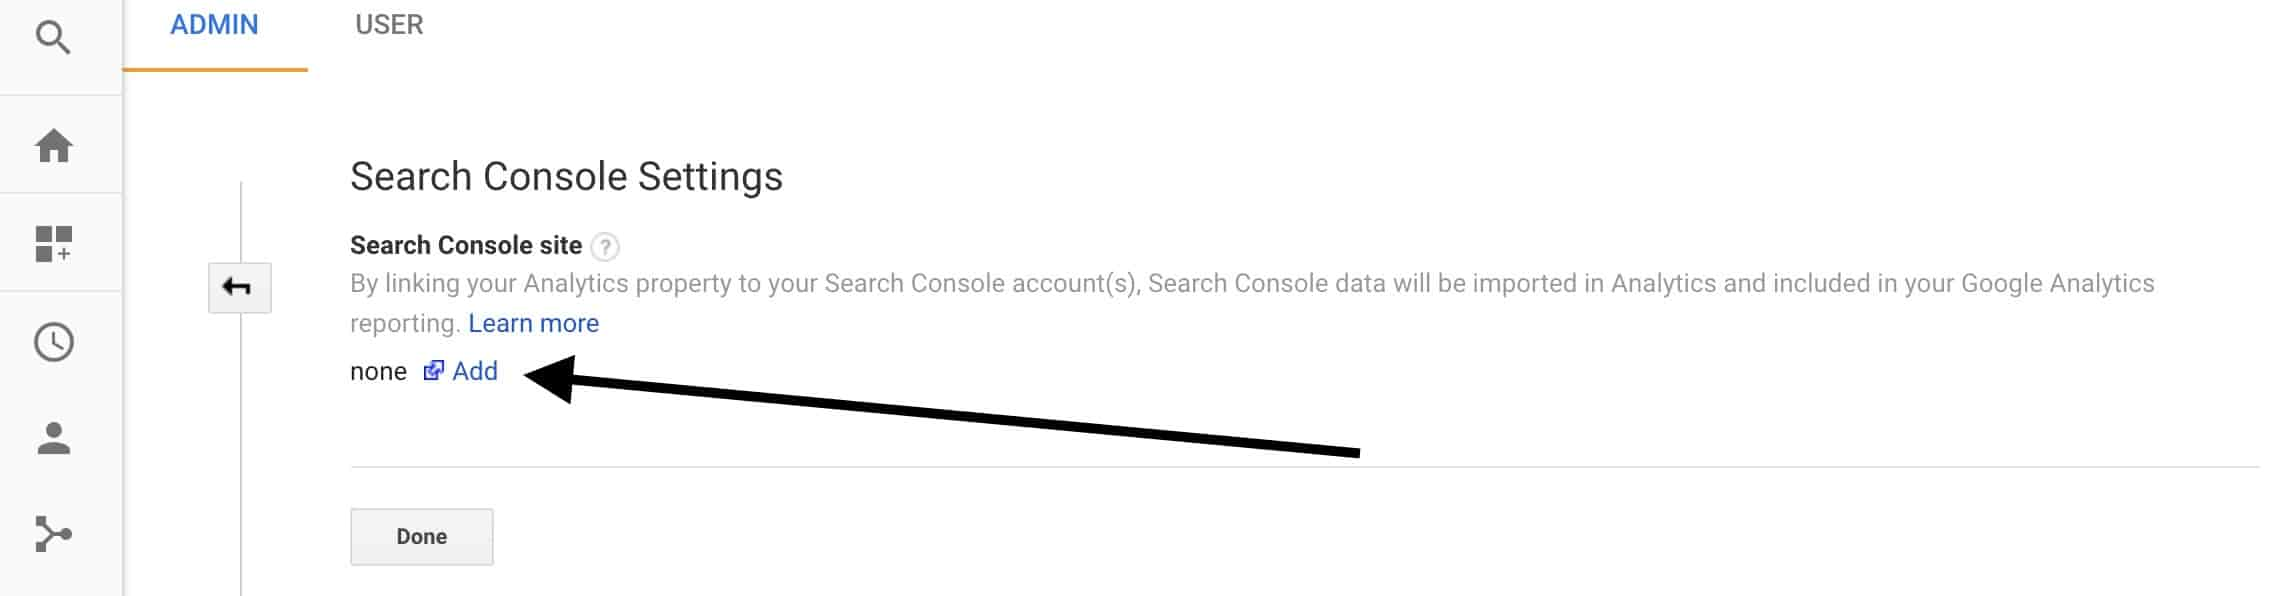 link-google-analytics-to-search-console_Add-min